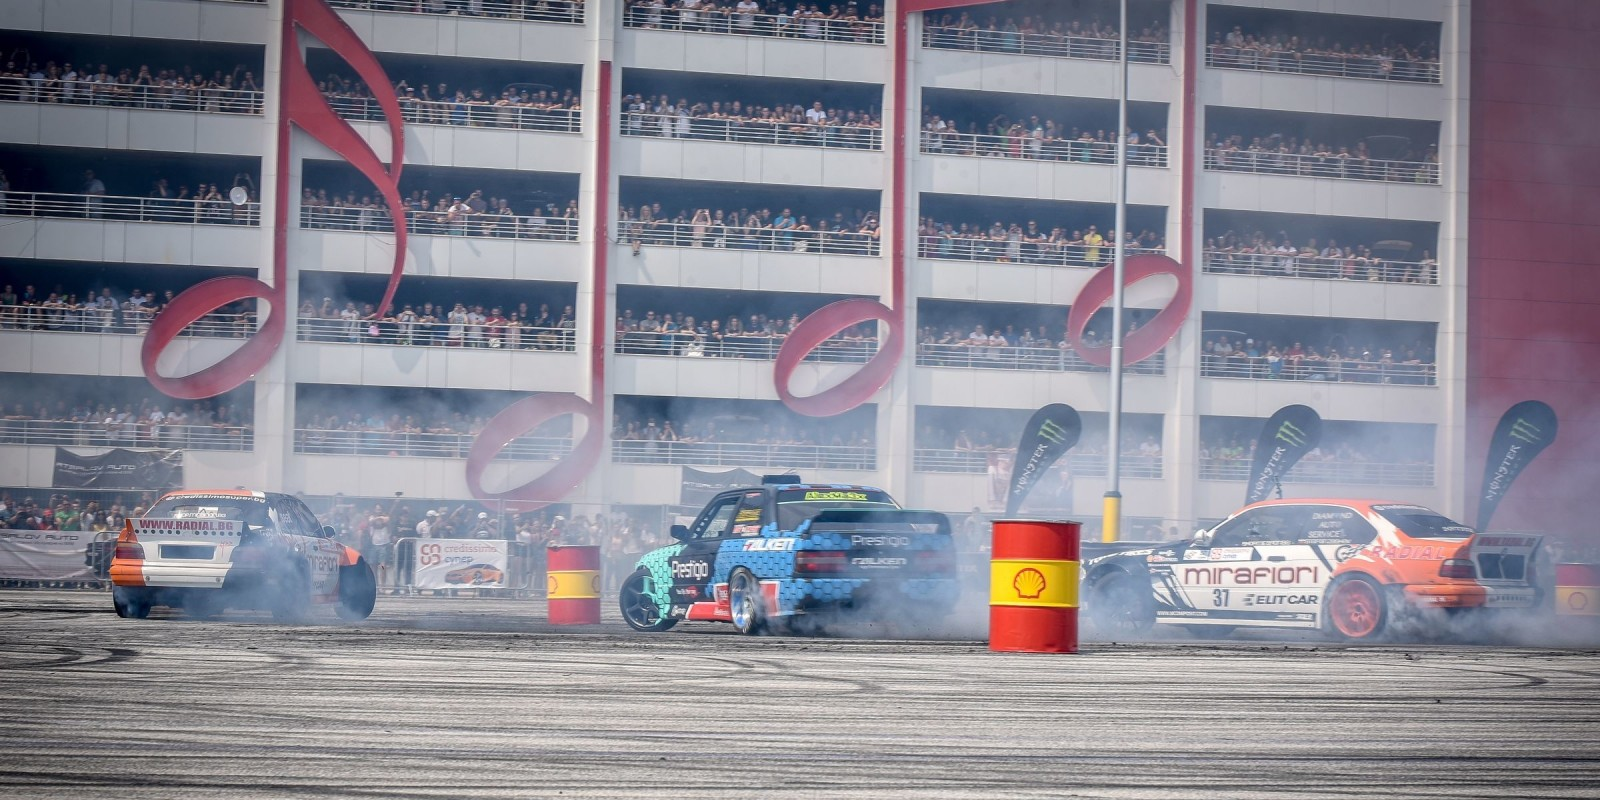 Photos of supported by ME drift athlete Alex Yazov at the BMW fest in Bulgaria also supported by ME